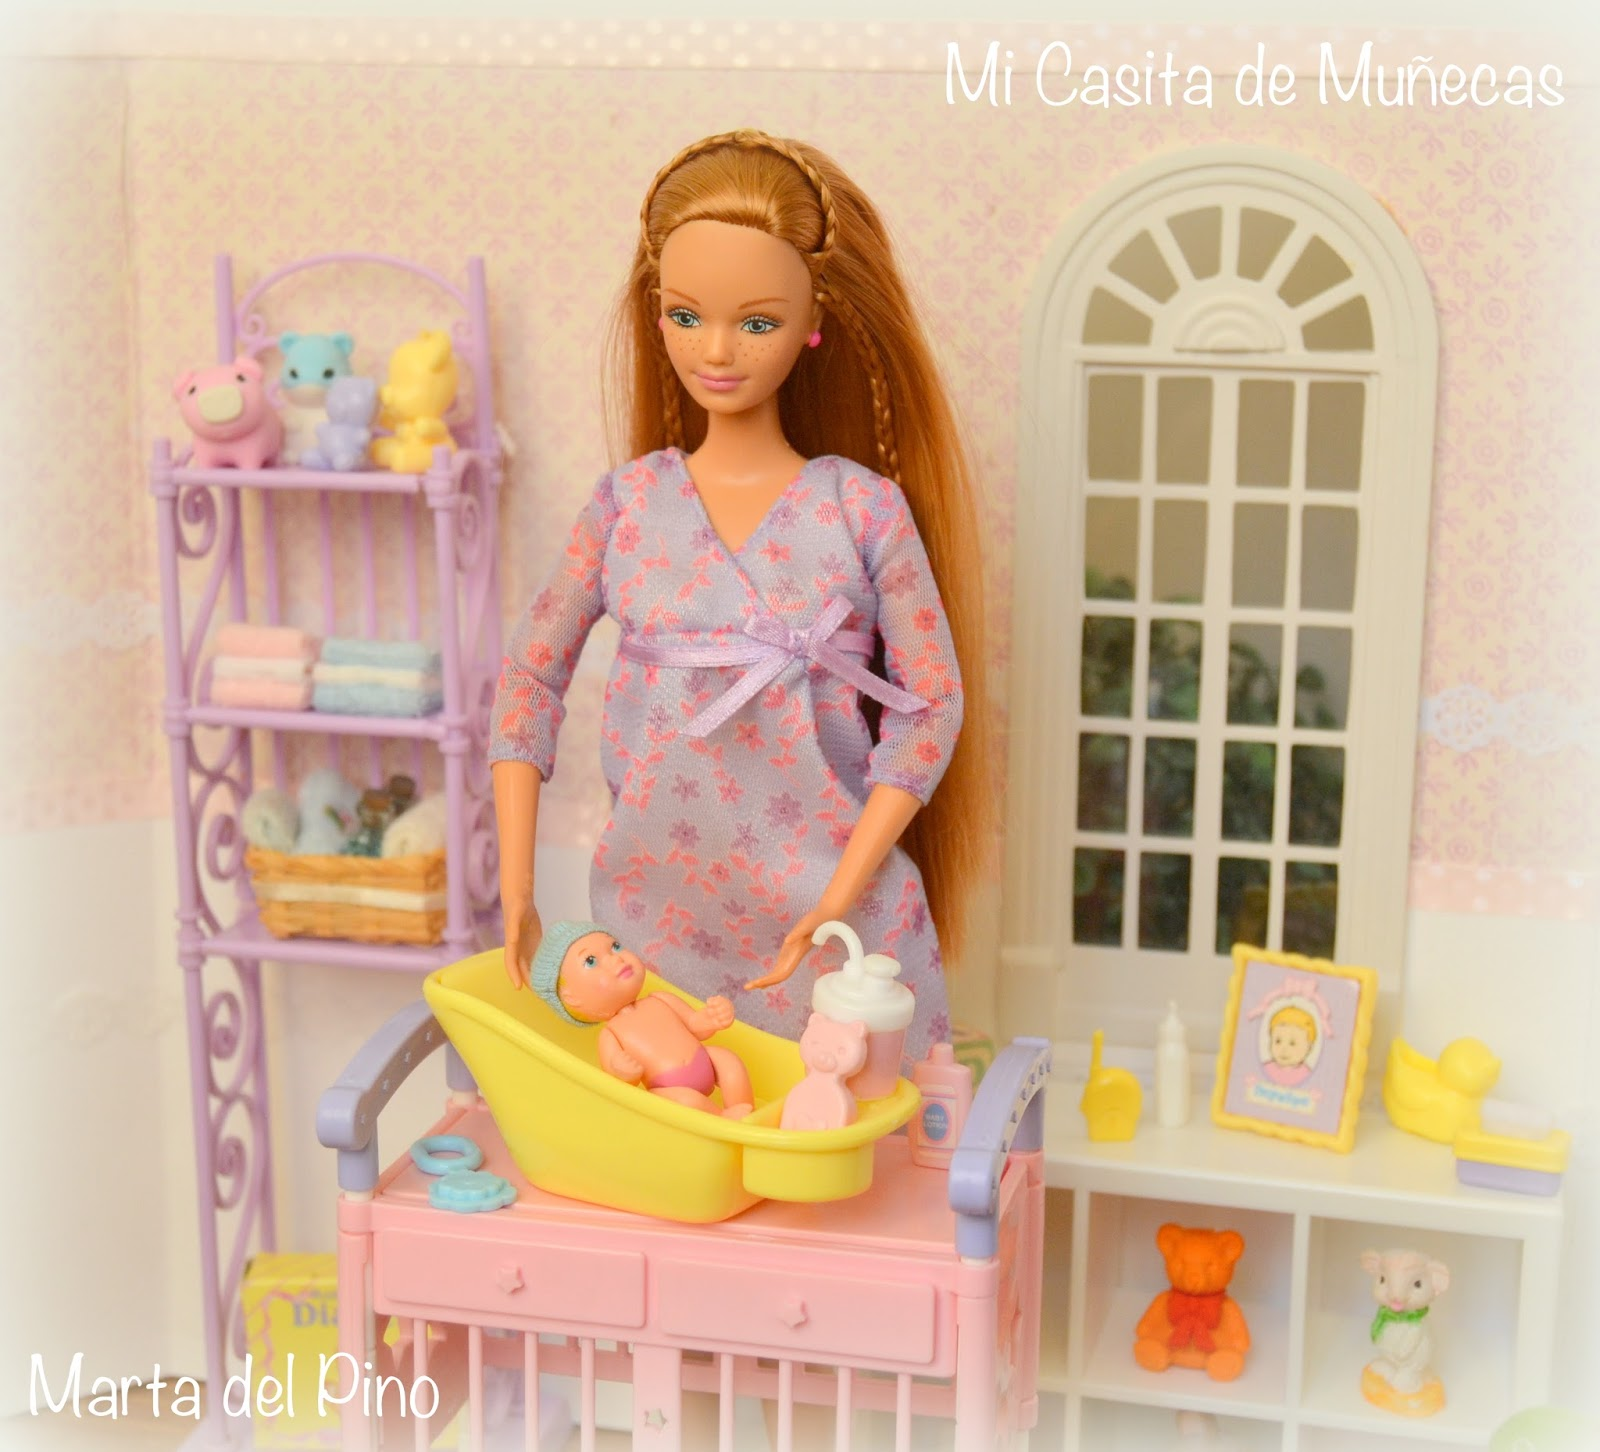 Muñecas Para Bebes De 6 Meses Mi Casita De Muñecas Barbie Midge Happy Family